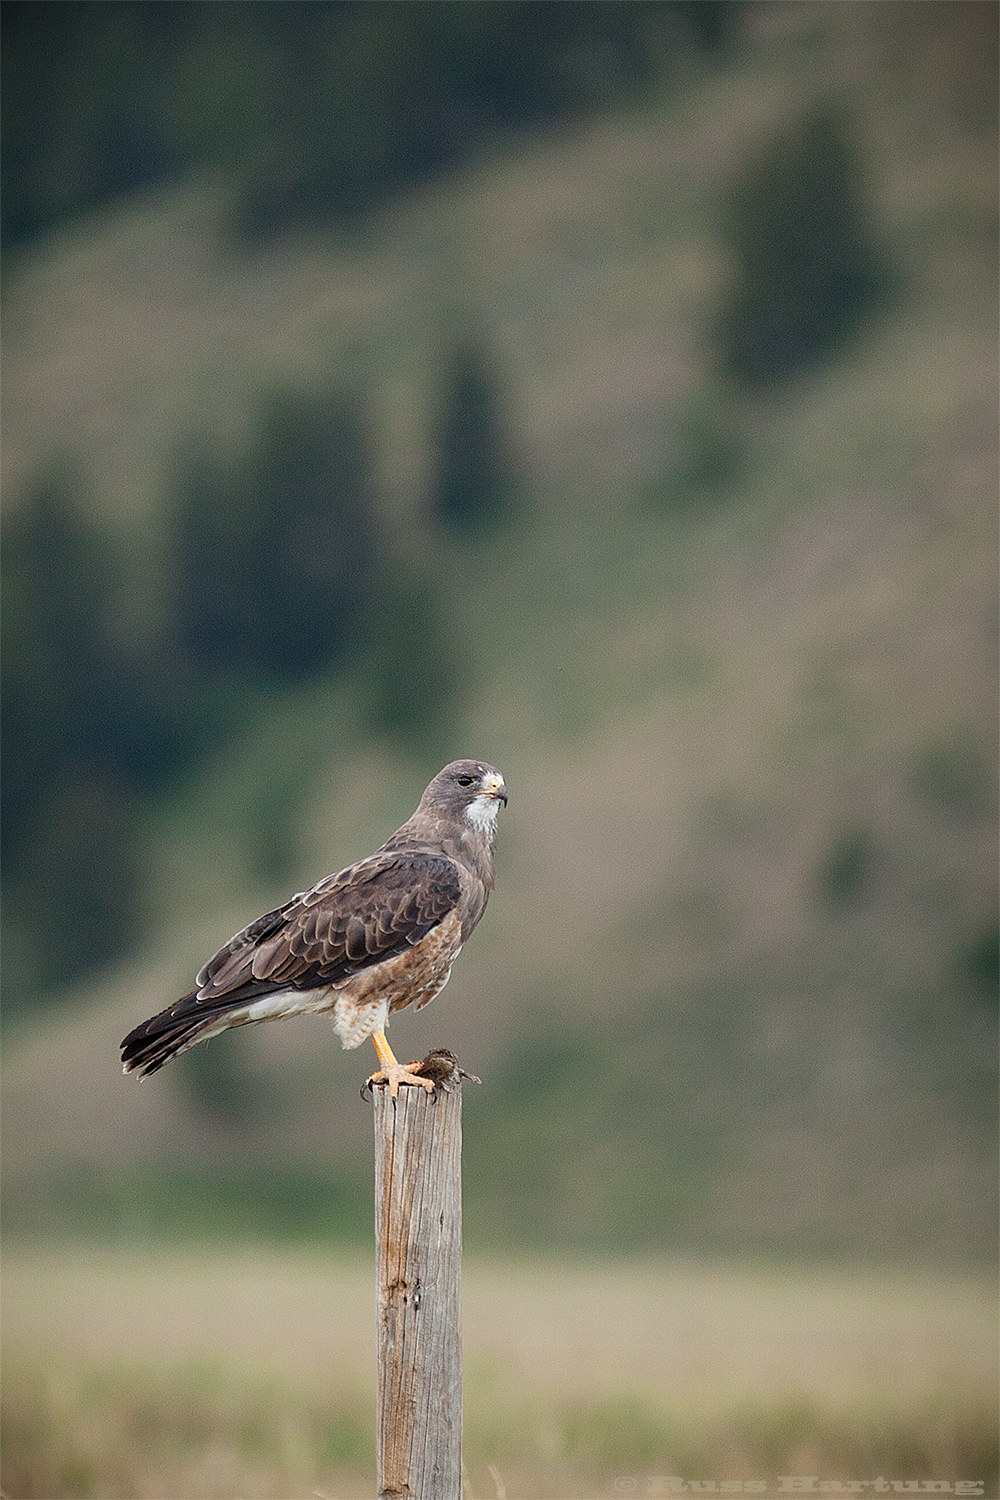 Hawk with freshly caught field mouse. Teton National Park - Jackson, Wyoming.